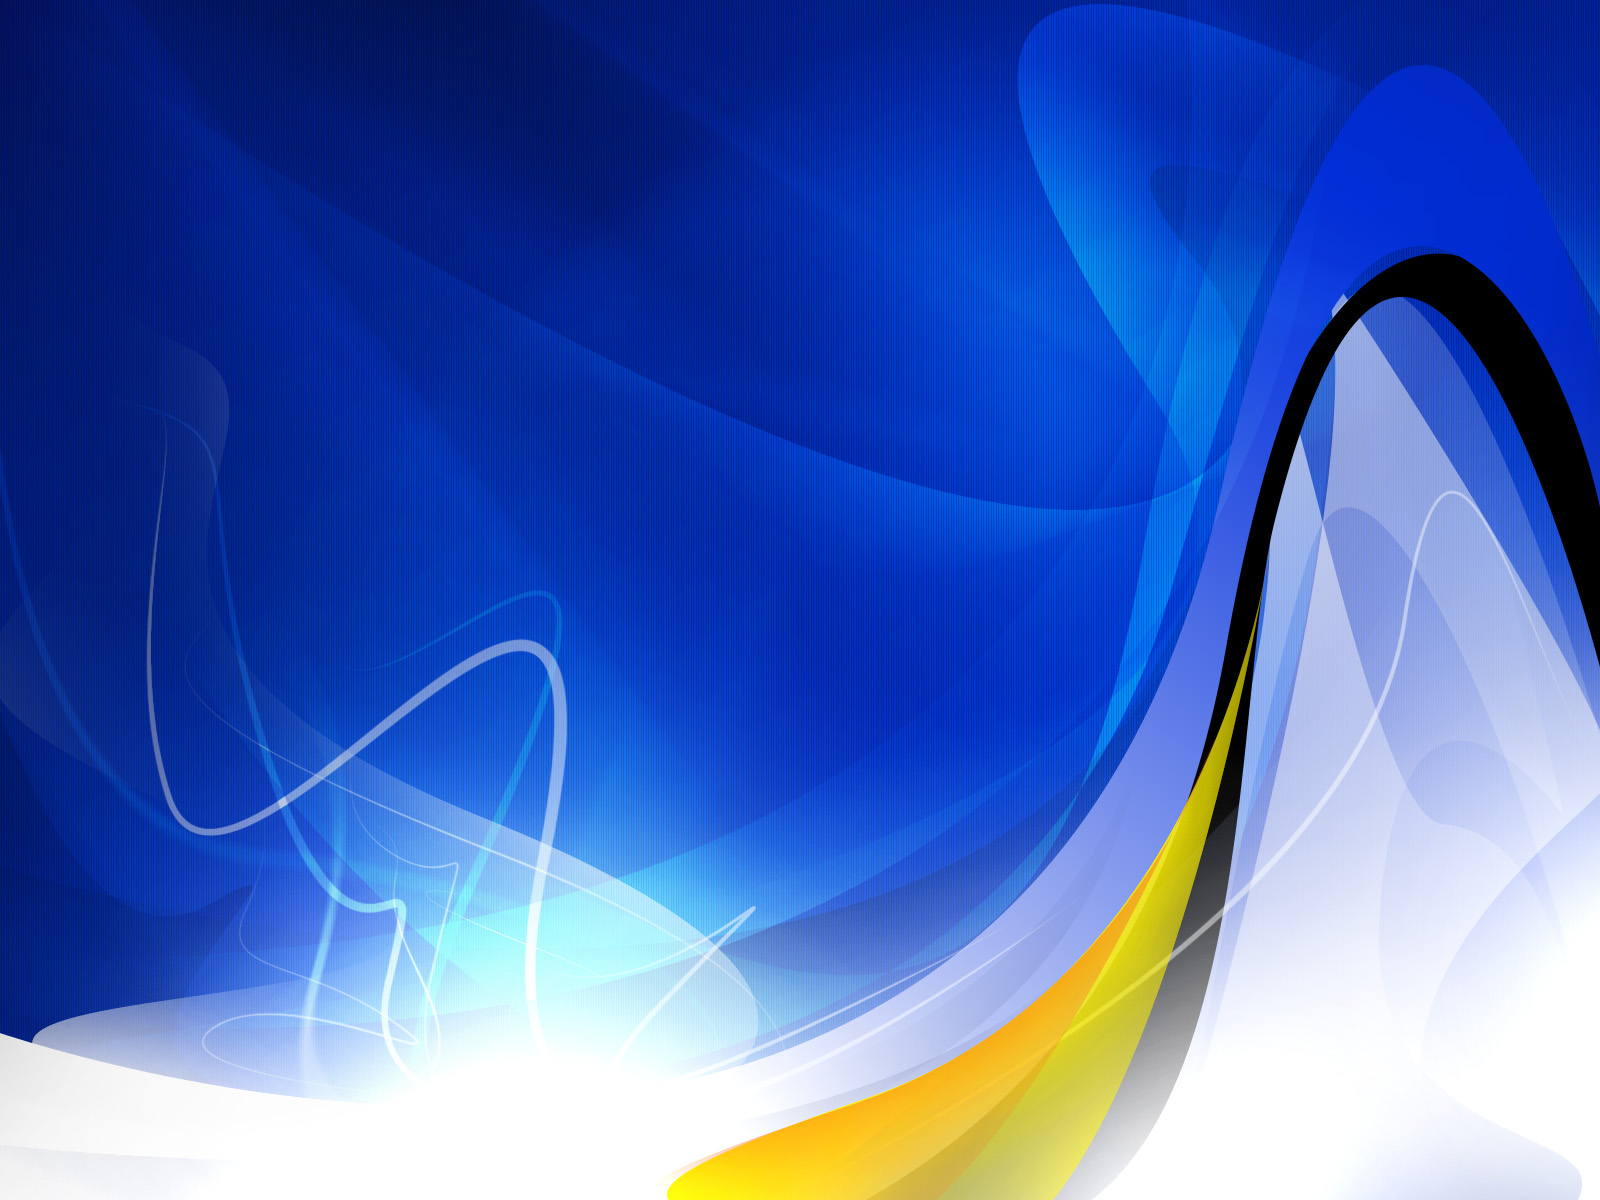 Blue Mix Abstract HQ Wallpapers HD Wallpapers 1600x1200